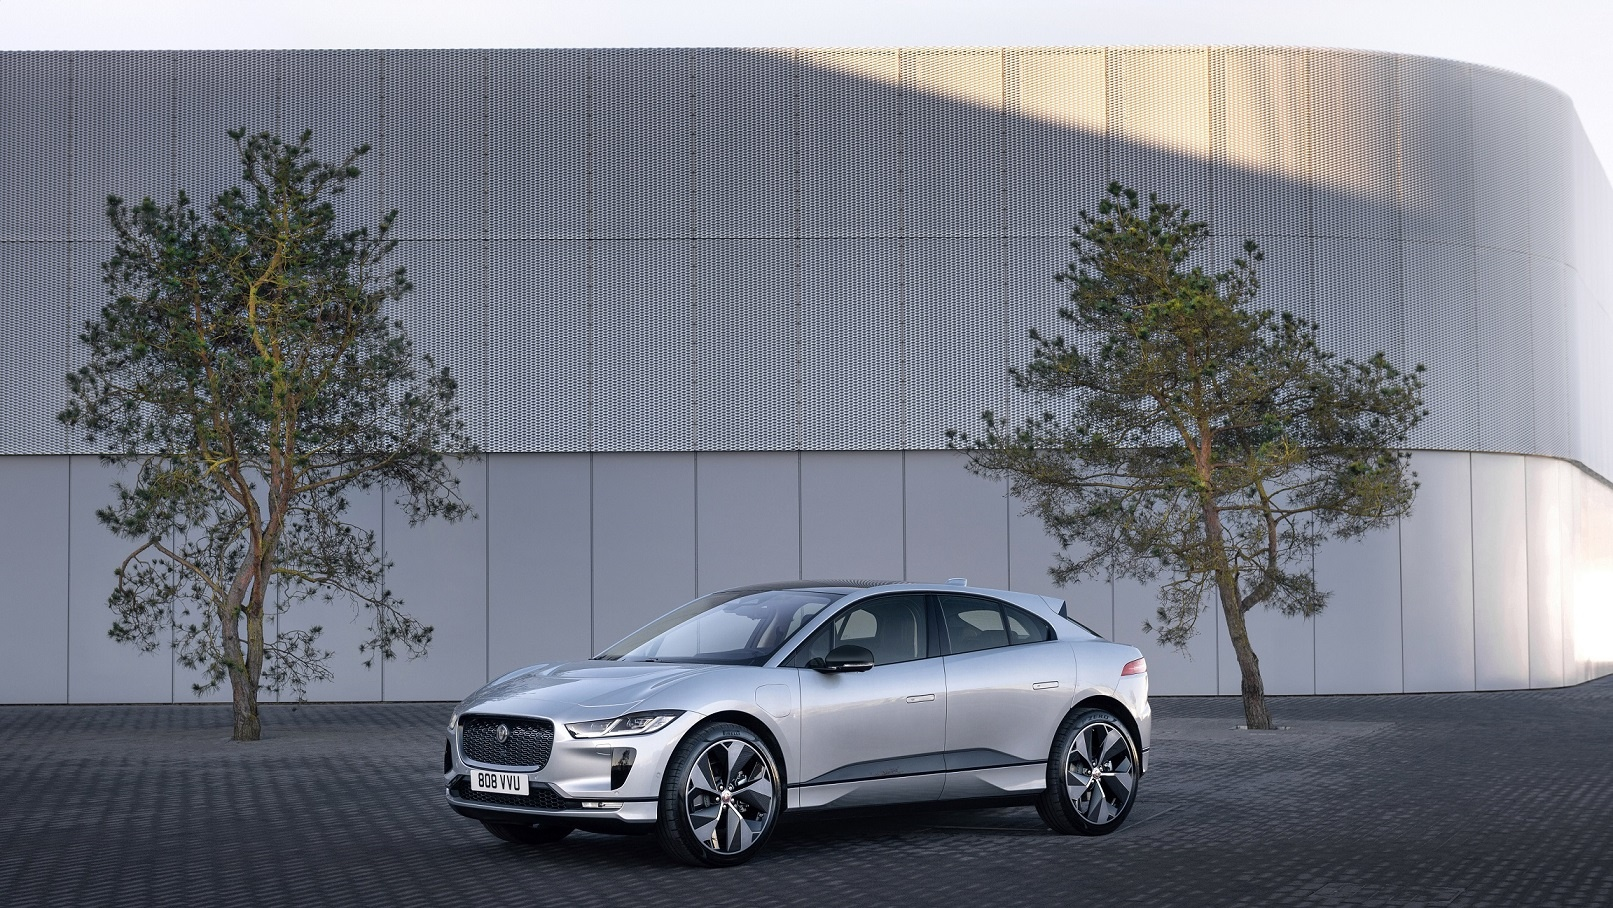 Jaguar land rover to provide fleet of all electric vehicles for world leaders at cop26